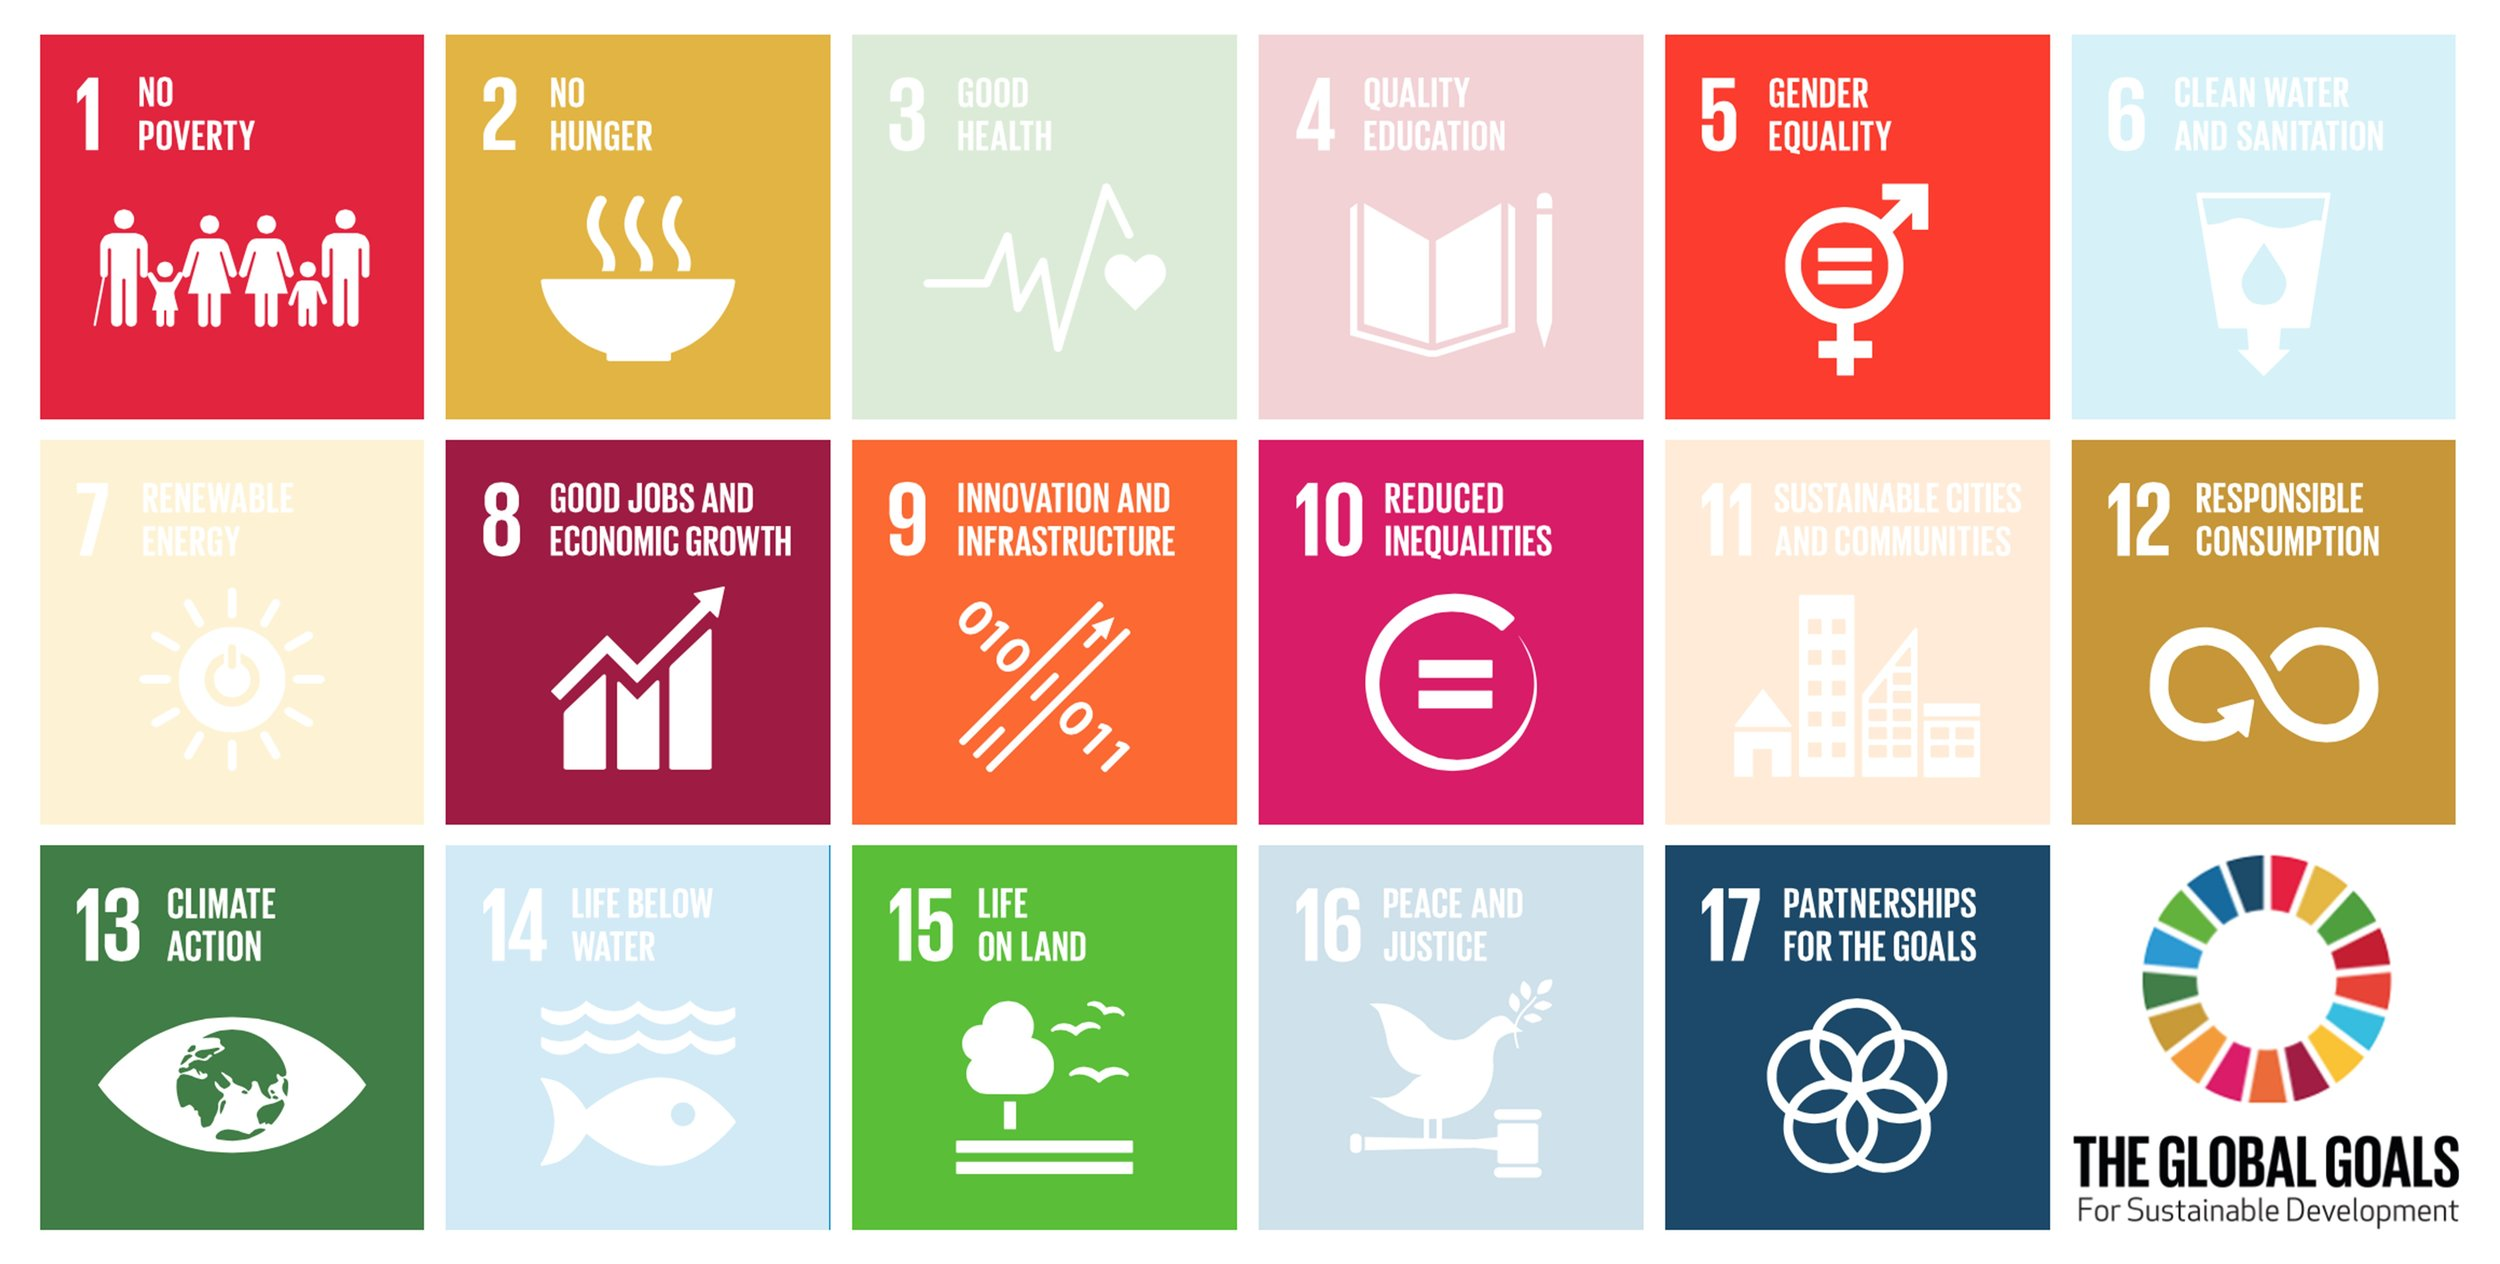 Cheetah's work contributes to 10 of the 17 UN Sustainable Development Goals